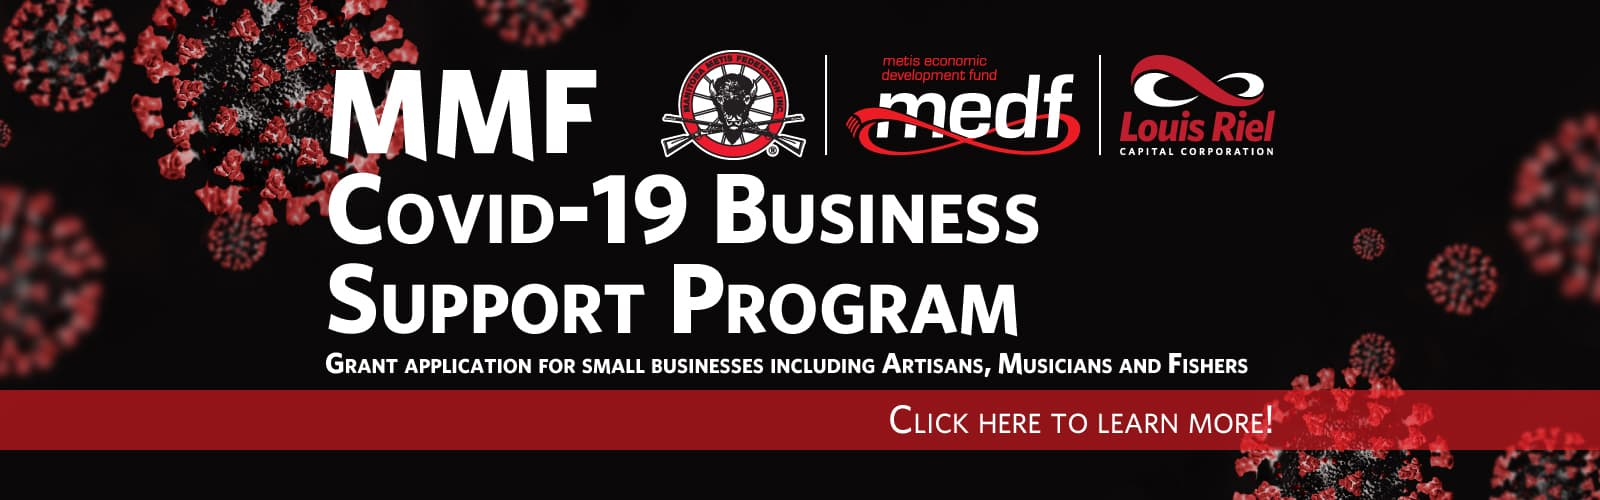 MMF Covid-19 Business Support Program